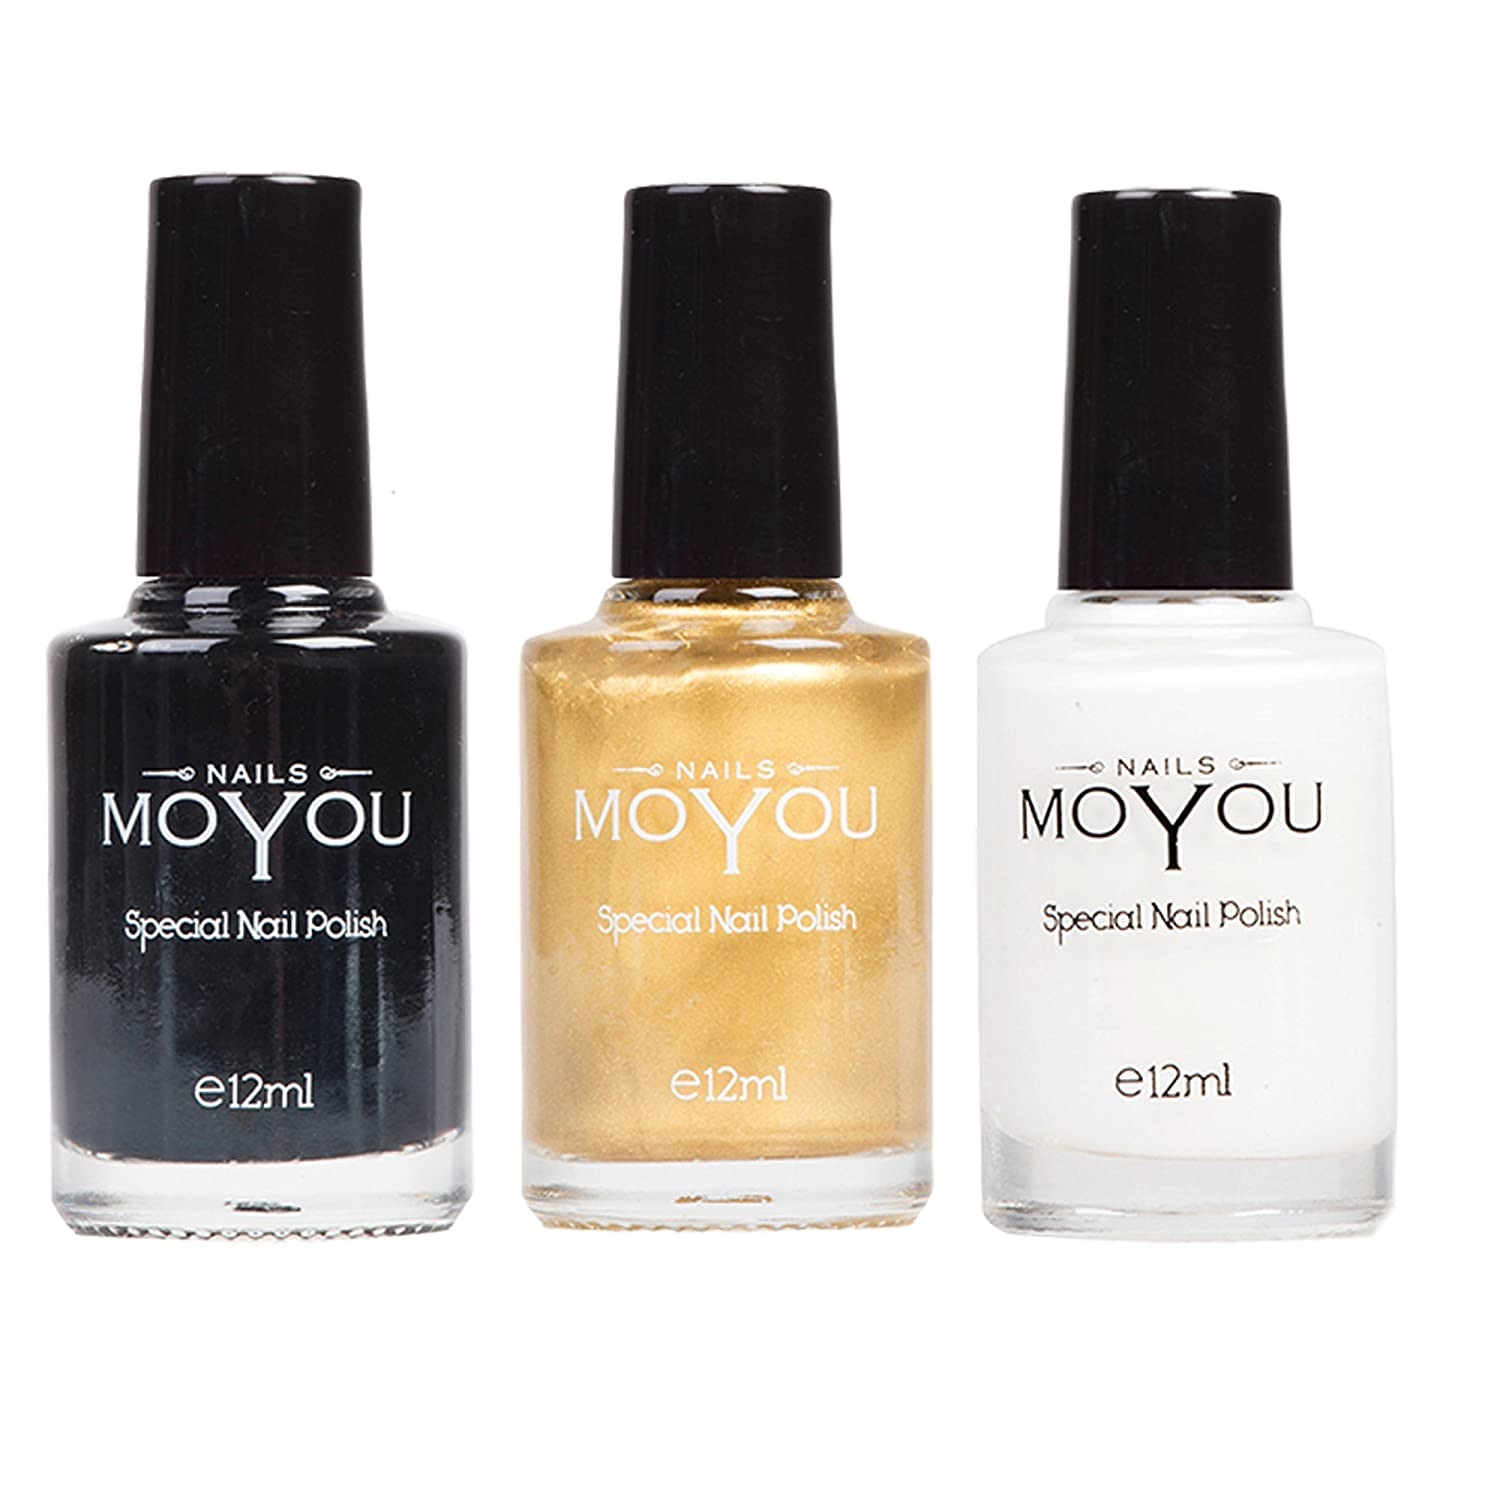 MoYou Nails Bundle of 3 Stamping Nail Polish: Black, White and Gold Colours Used to Create Beautiful Nail Art Designs